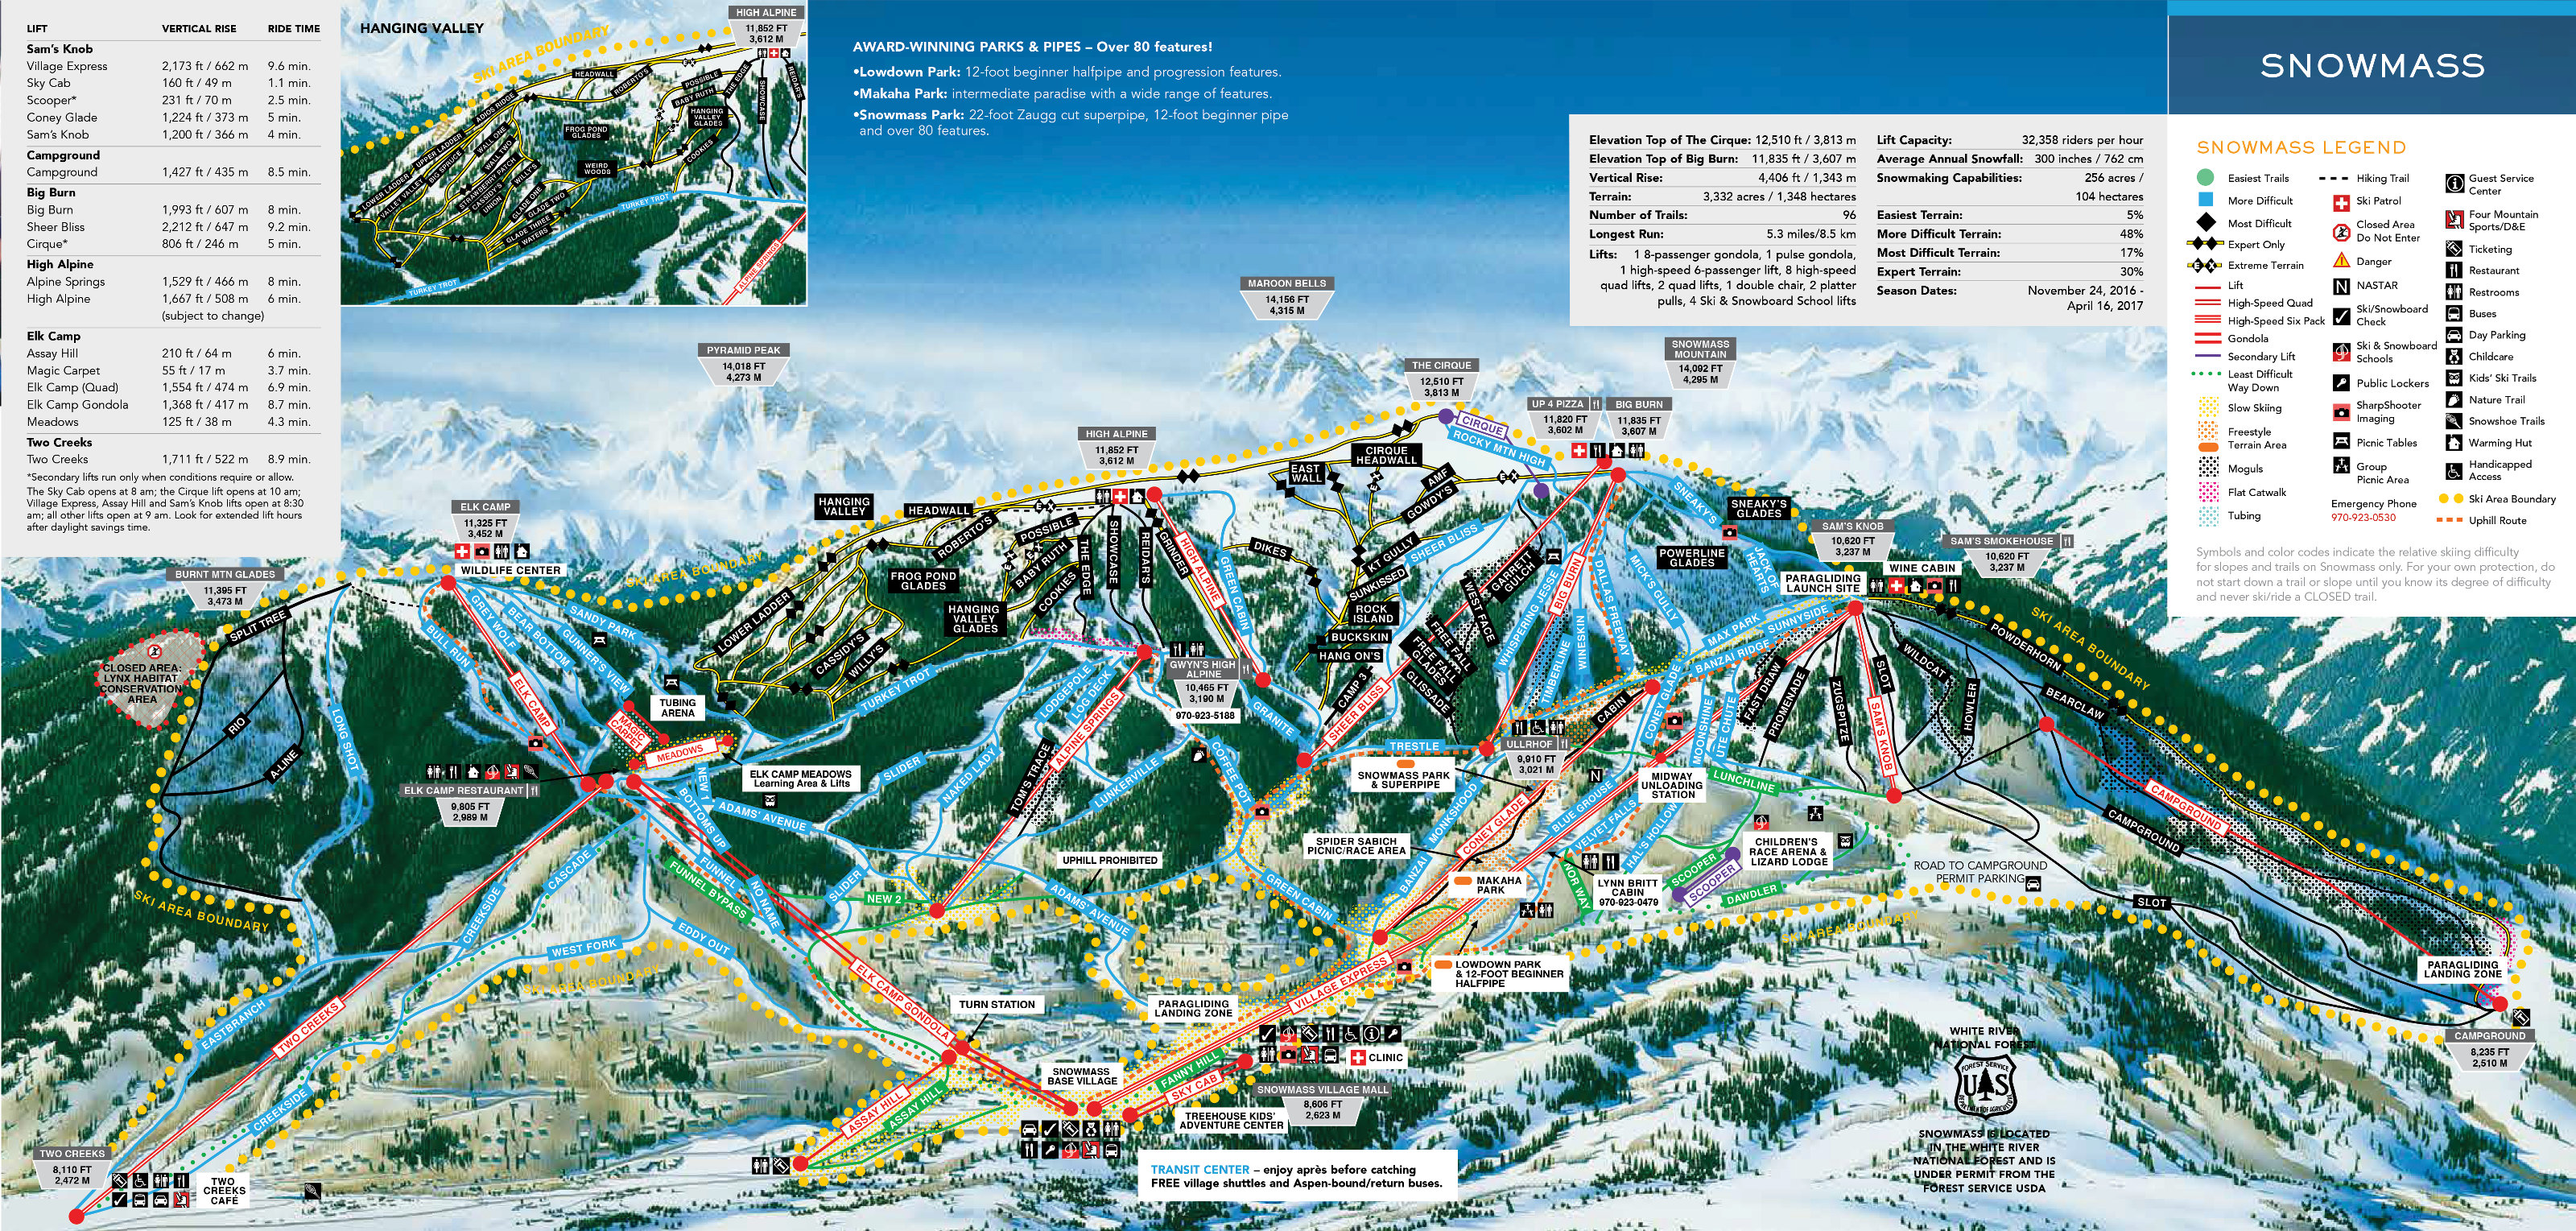 Snowmass Ski Resort Piste Map